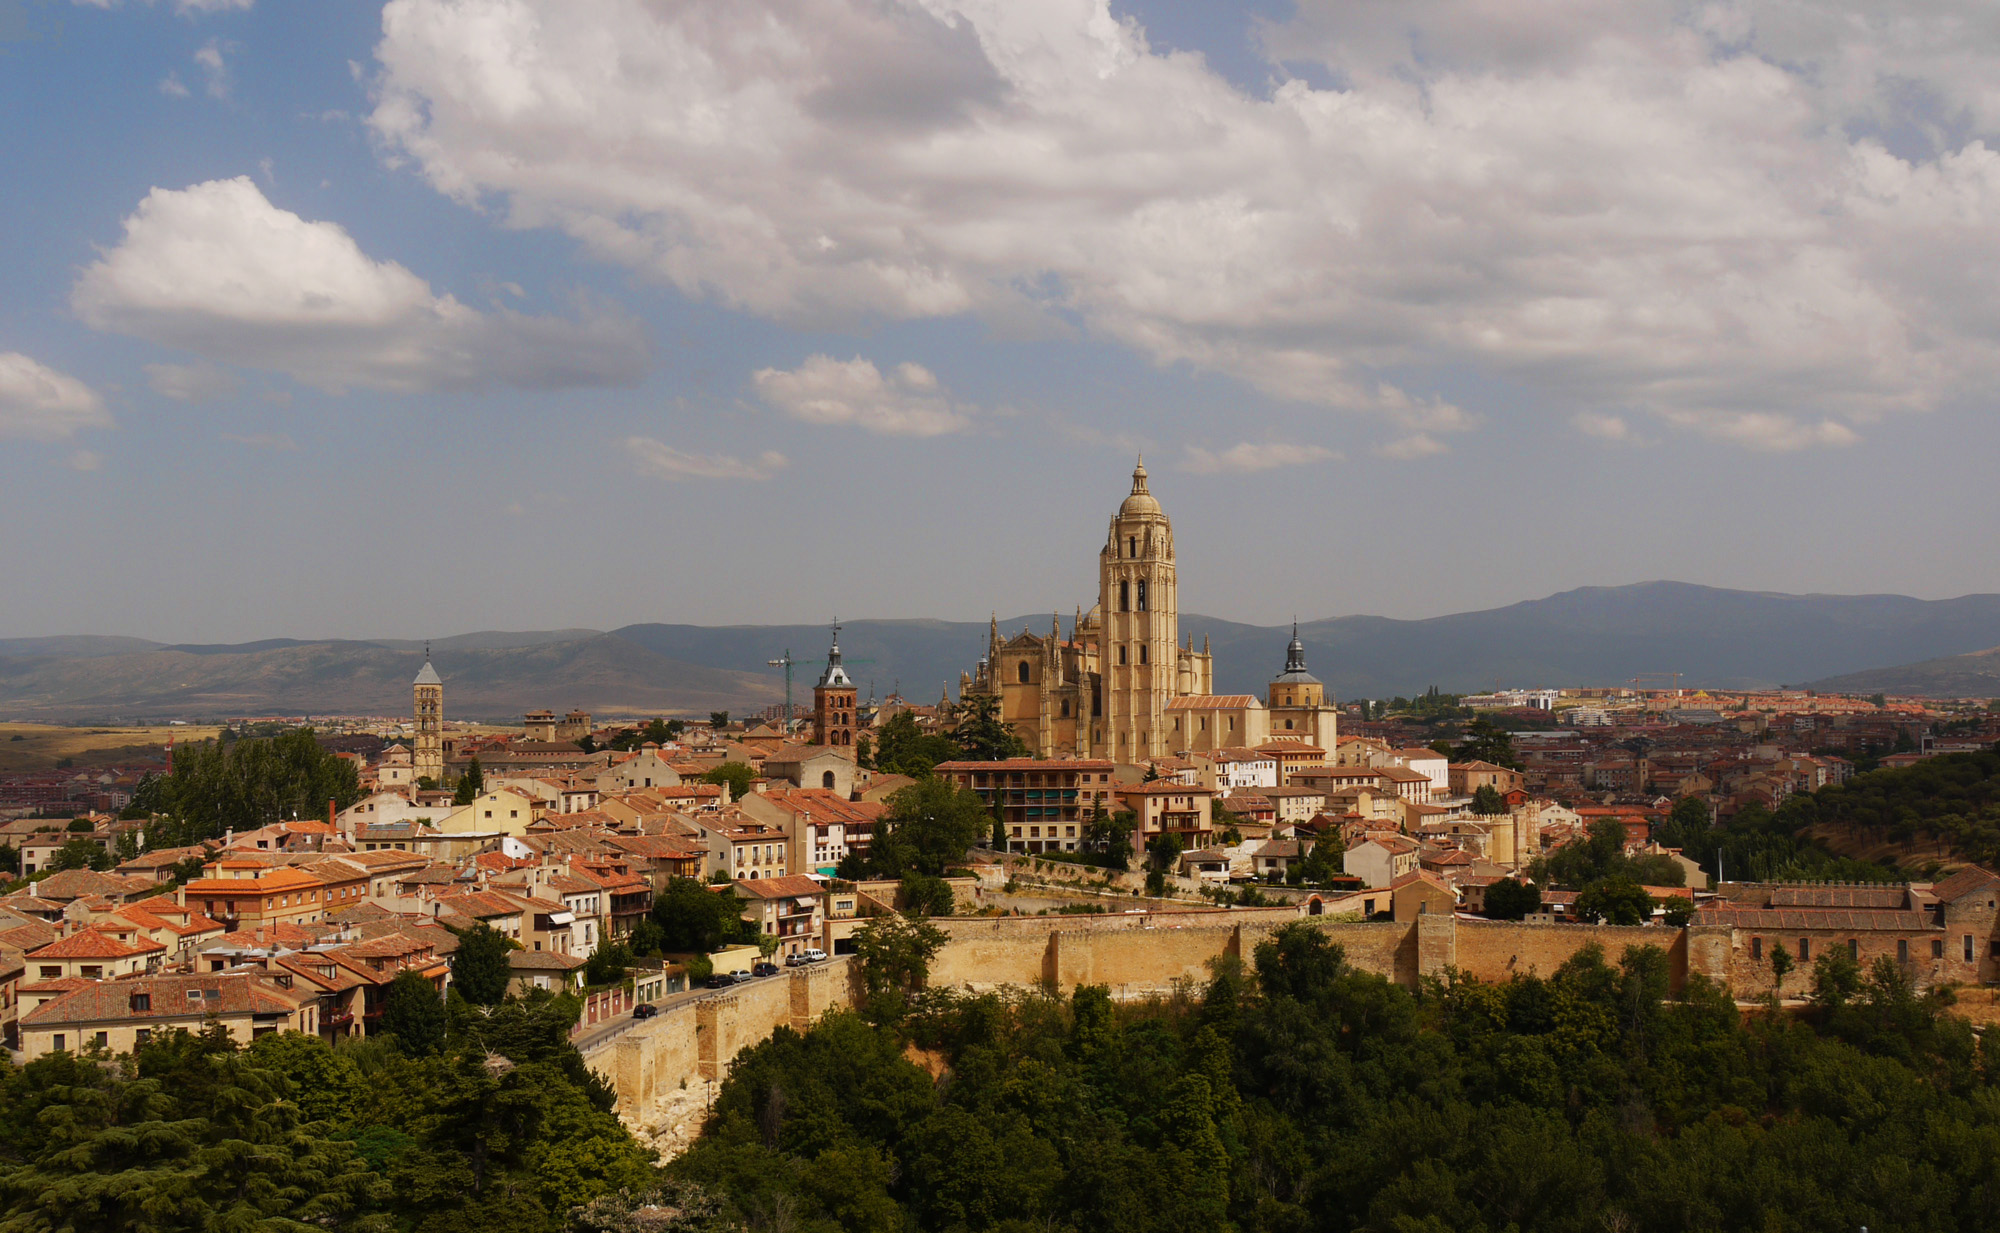 segovia-111-2-cathedral-view-from-alcazar-castle